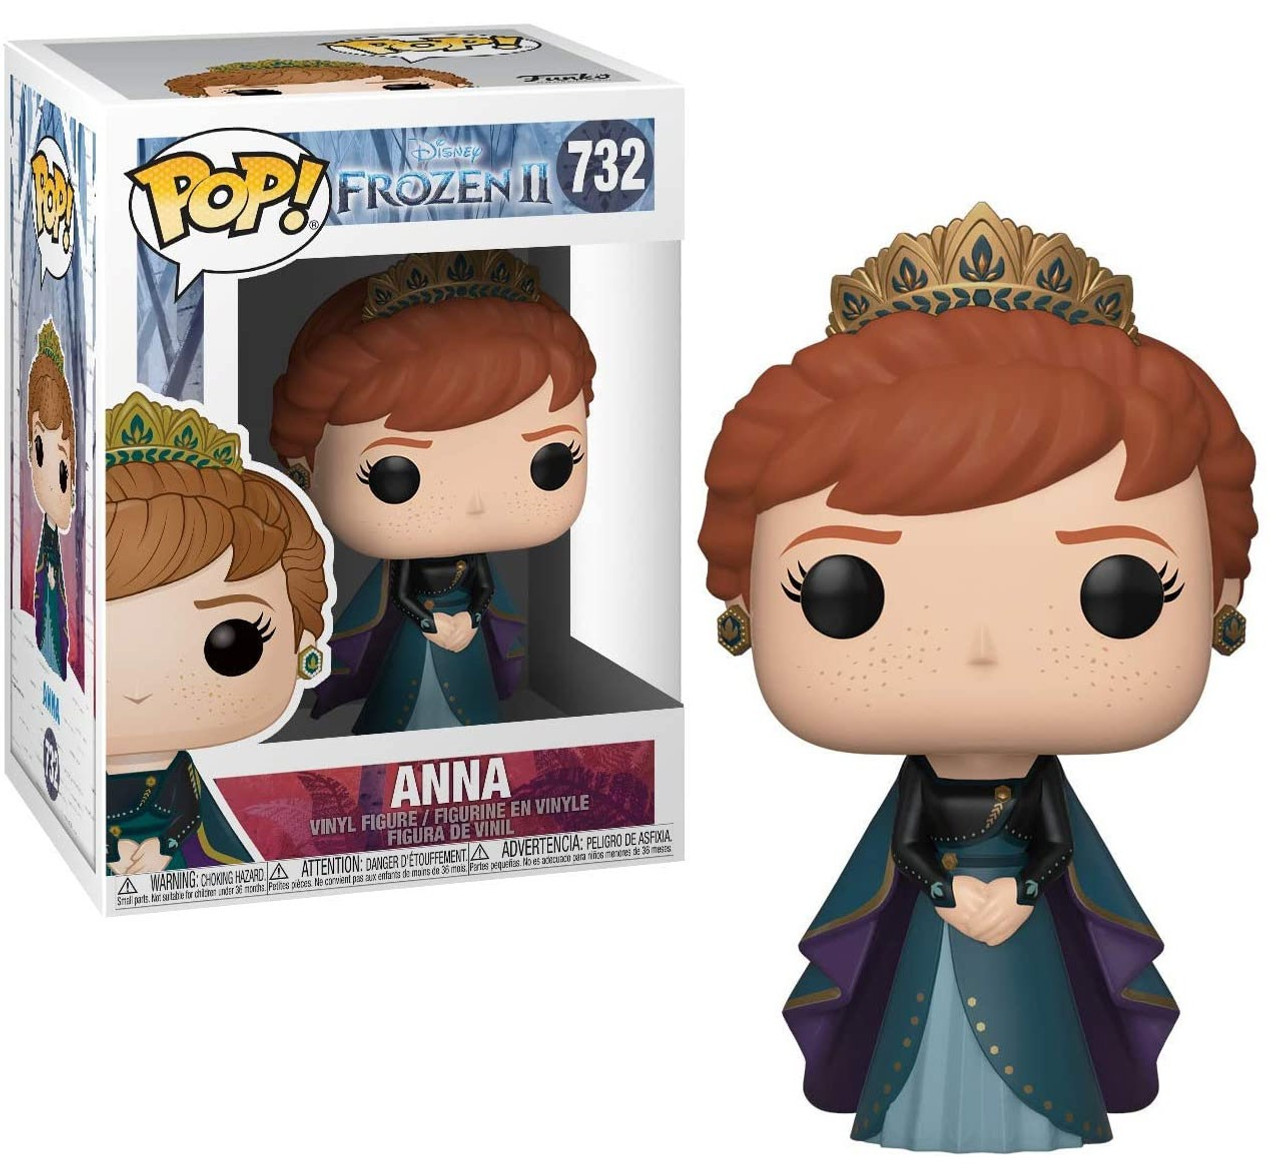 Funko Disney Frozen 2 Pop Disney Anna Vinyl Figure Epilogue Dress Toywiz